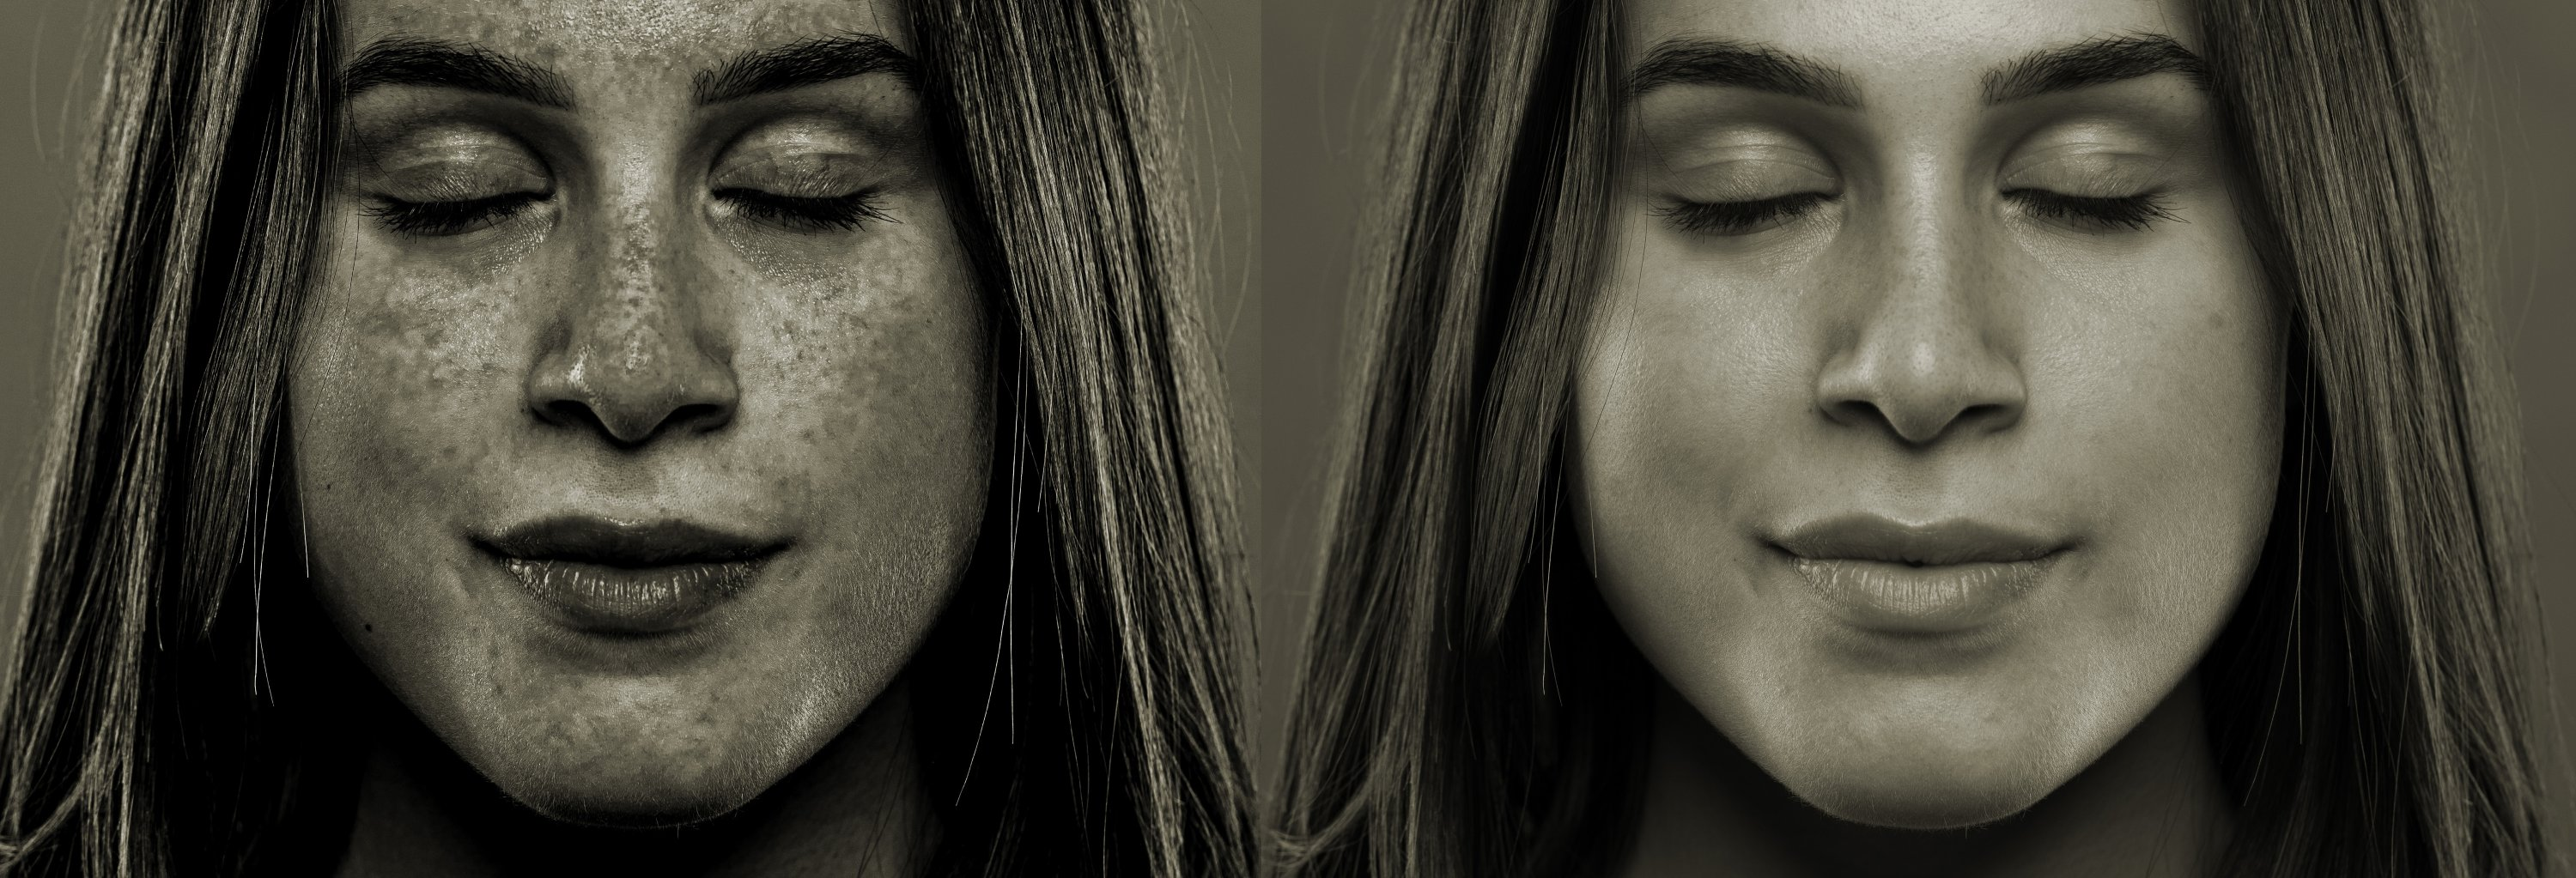 A side by side comparison shows the before and after results of a young girl who spent too long in the sun outdoors without UV skin protection. (Shutterstock Photo)